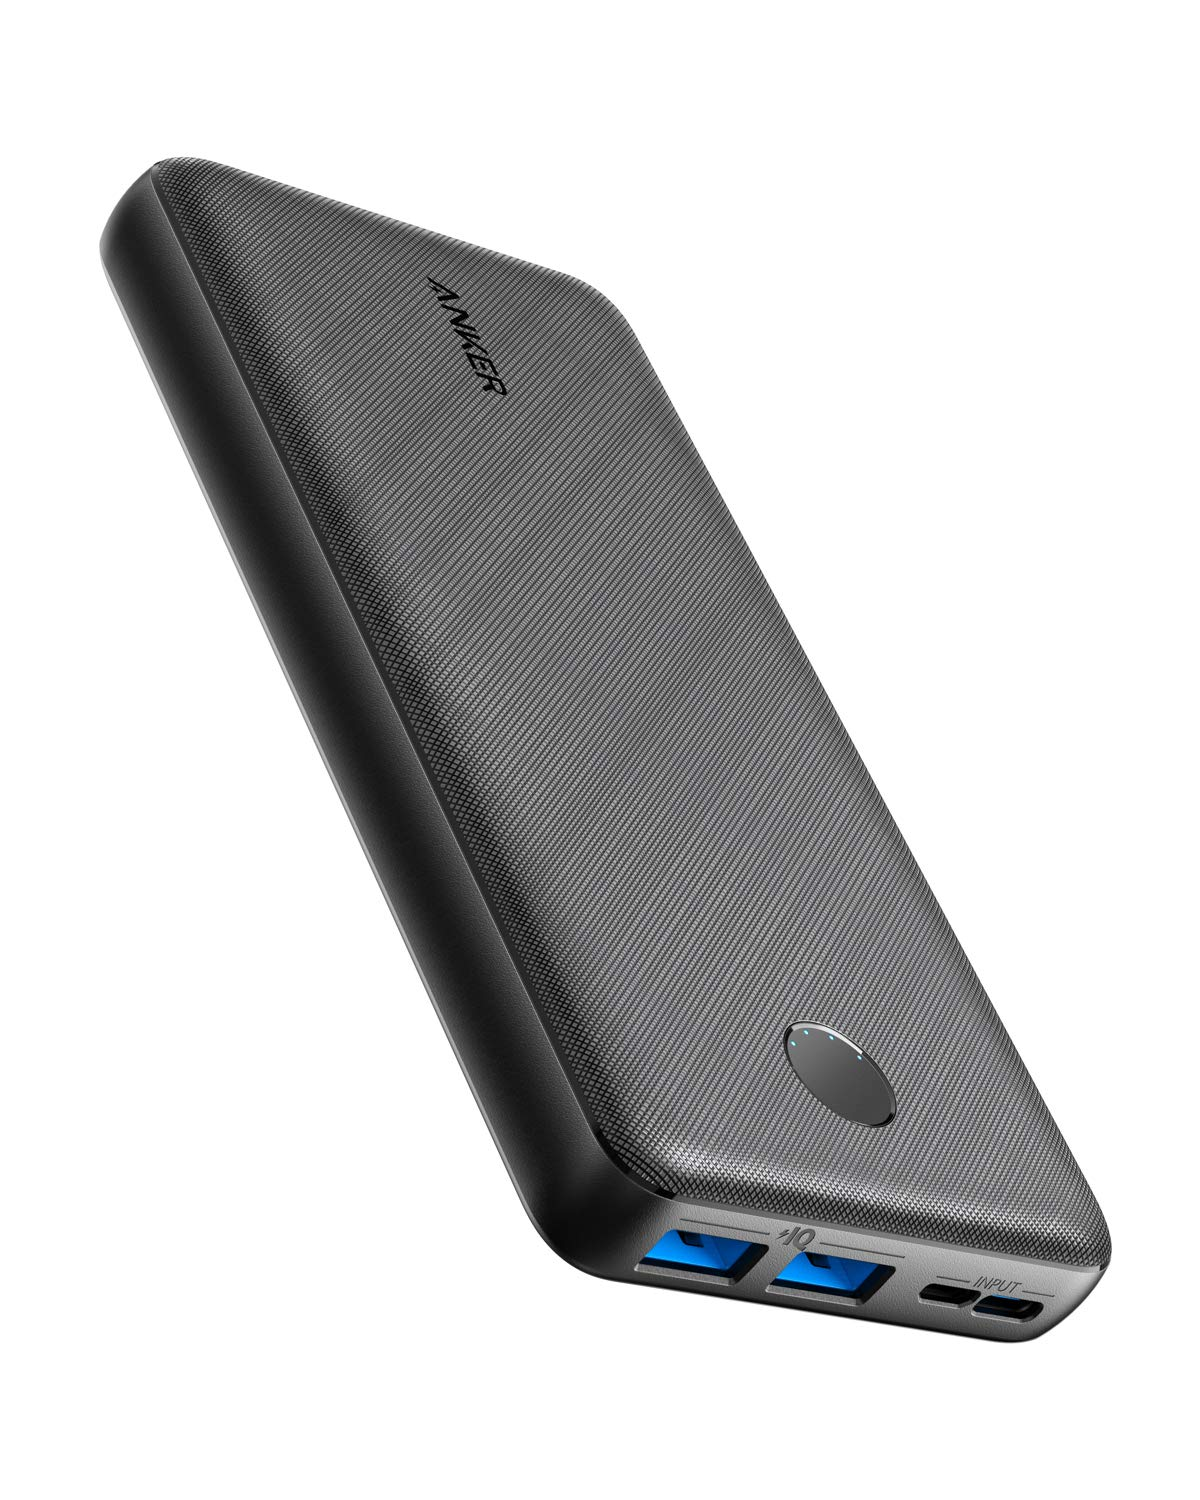 Anker PowerCore Essential 20000 Portable Charger, 20000mAh Power Bank with PowerIQ Technology and USB-C Input, High-Capacity External Battery Compatible with iPhone, Samsung, iPad, and More. by Anker